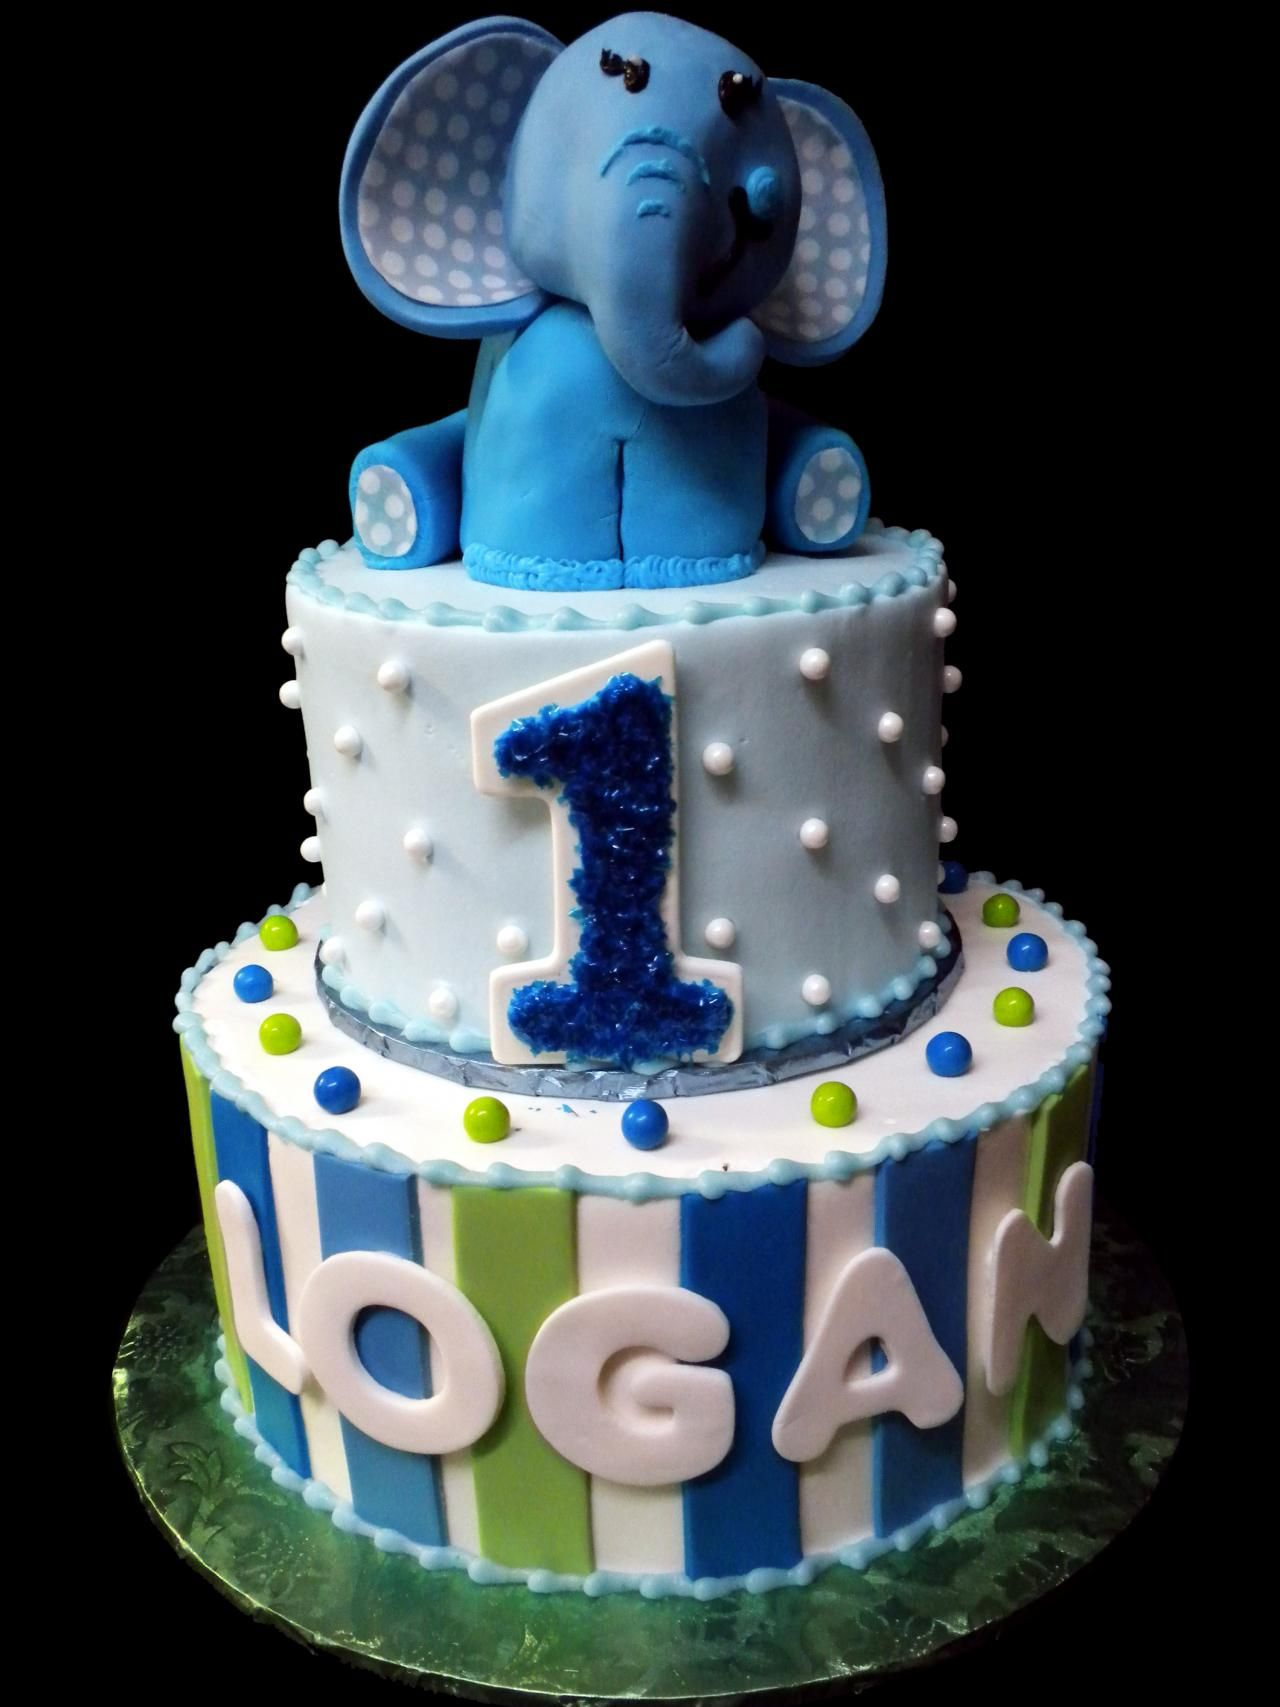 Elephant 1st Birthday Cake Blue And White Ercream Iced 2 Round Tiers Decorated With